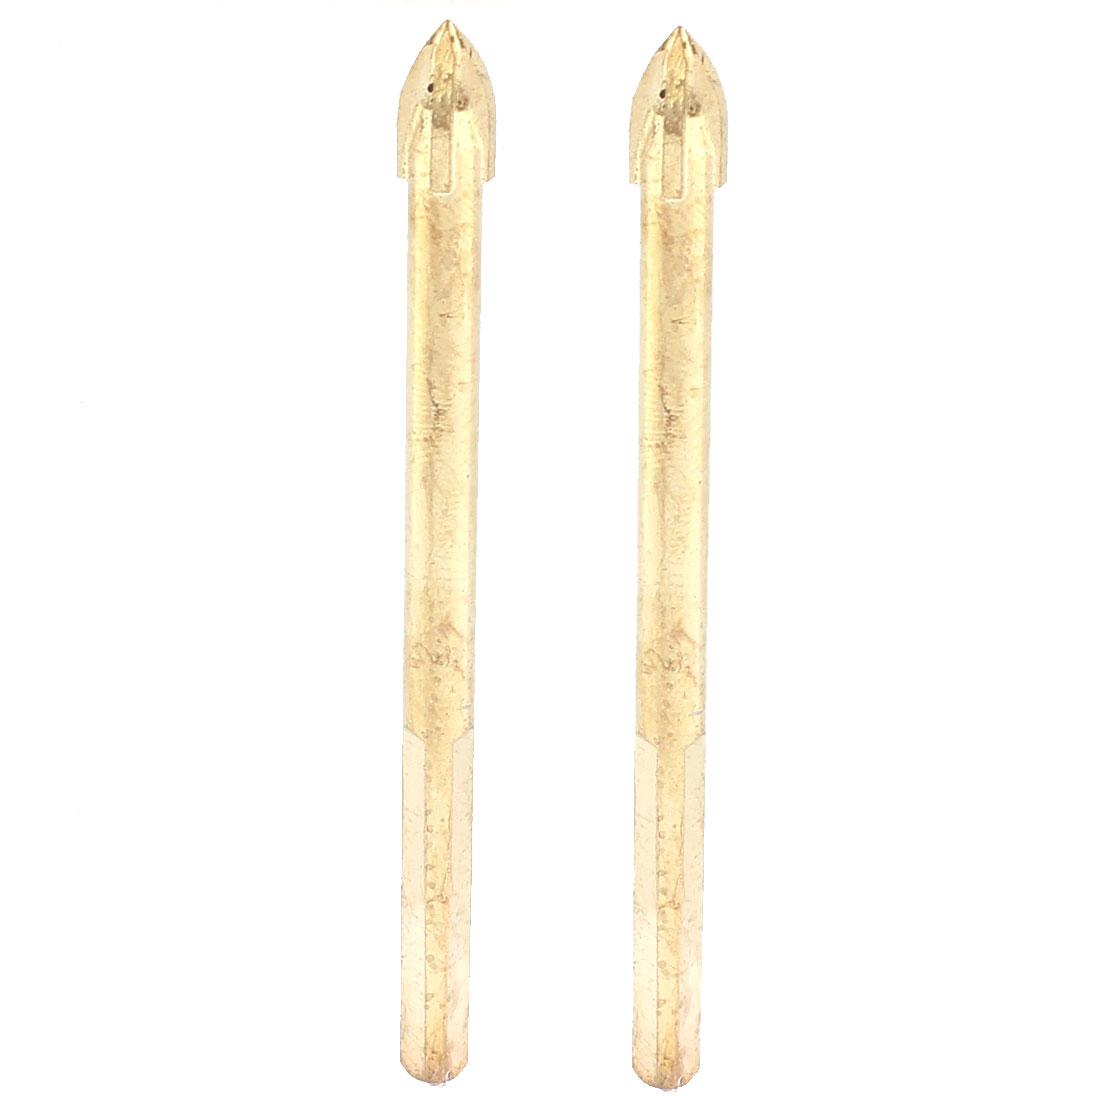 6mm Dia Cross Spear Head Triangle Shank Tile Glass Drill Bit Gold Tone 2pcs